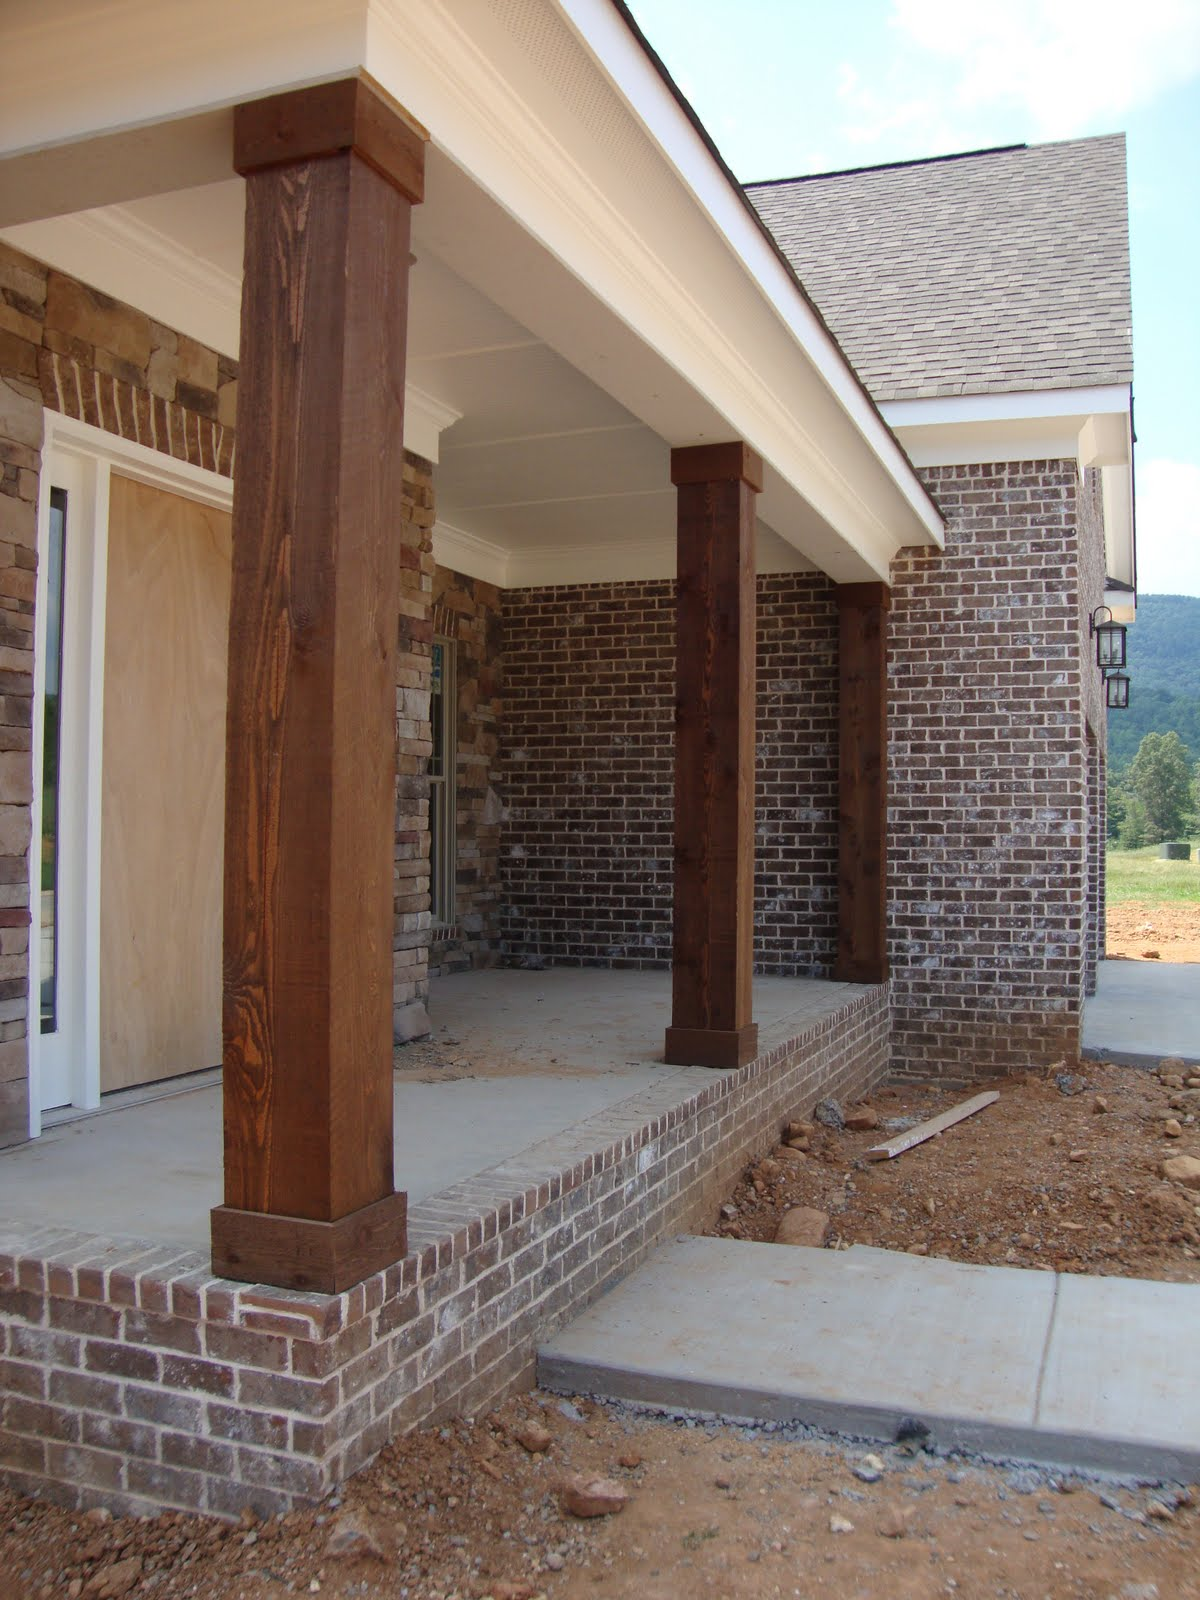 Porch Pillars And Columns : Images about porch columns and railing on pinterest